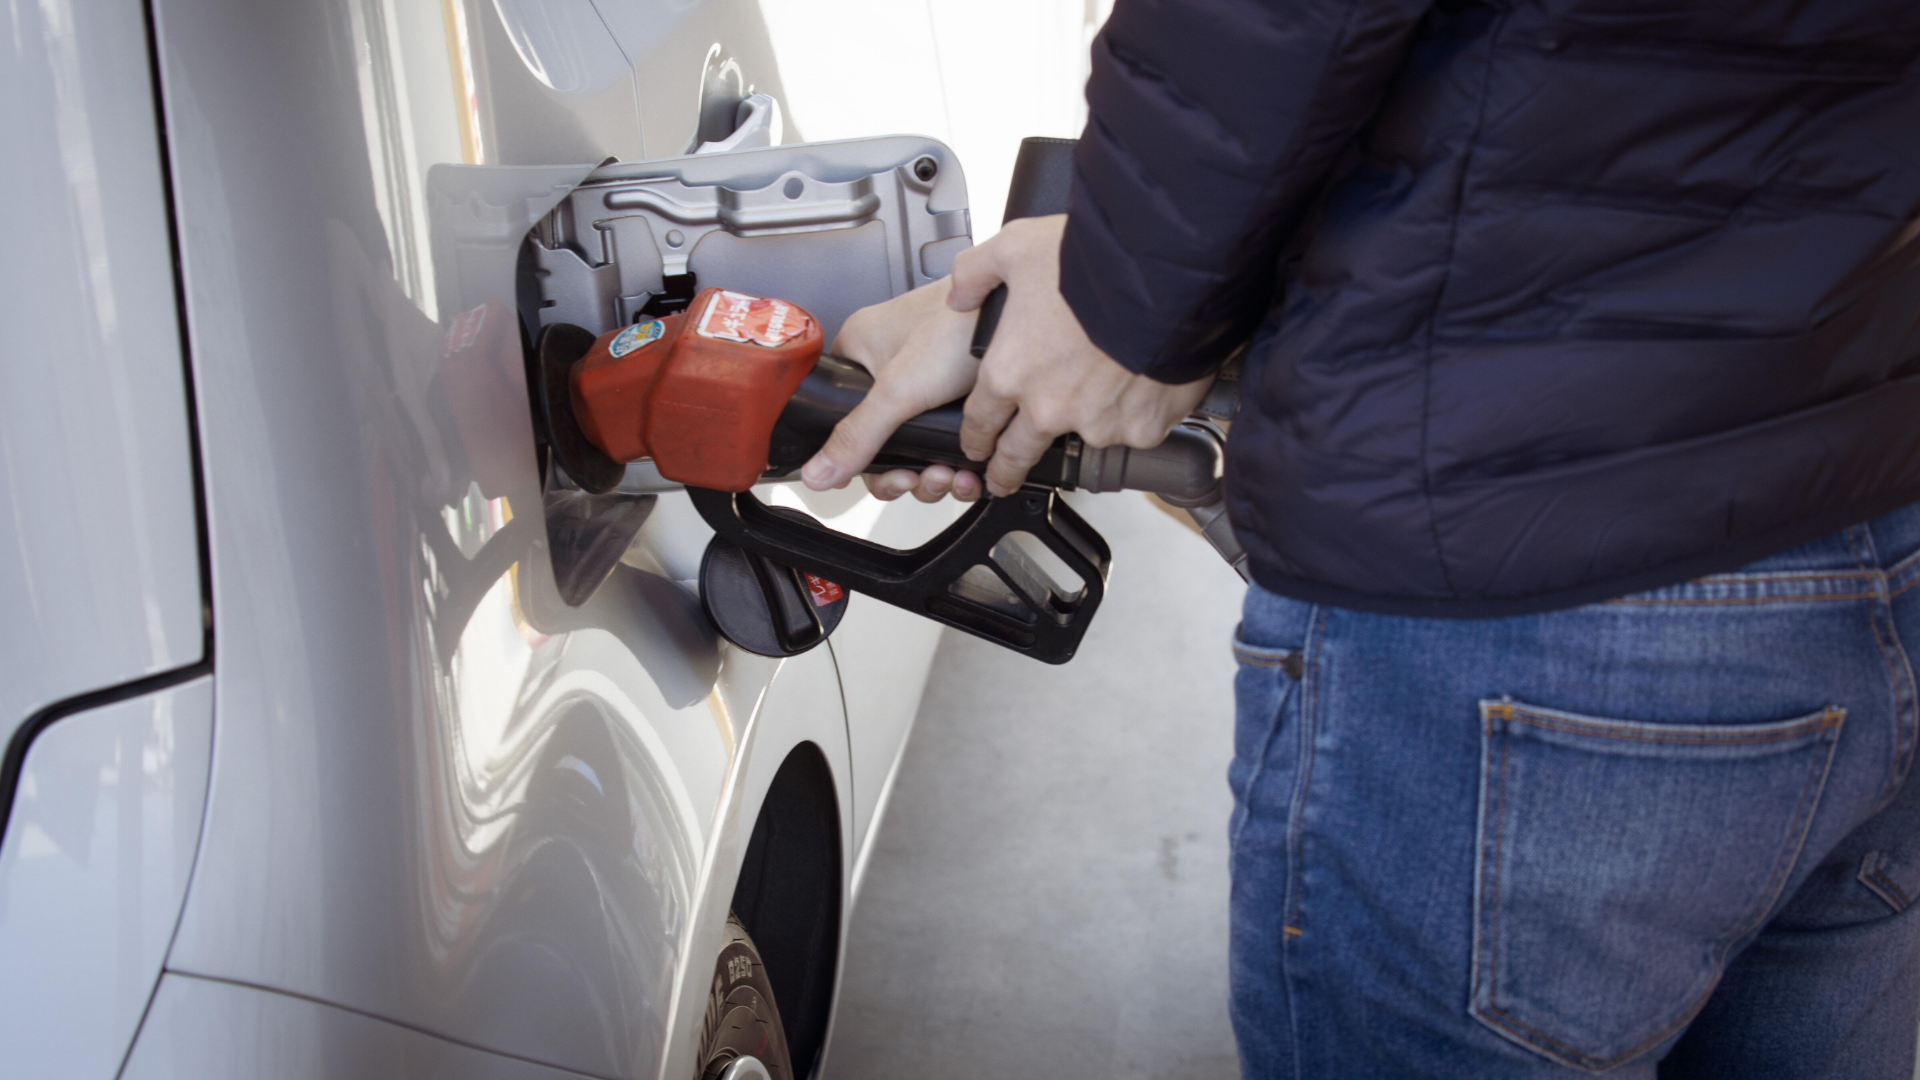 A person filling up their vehicle with gas